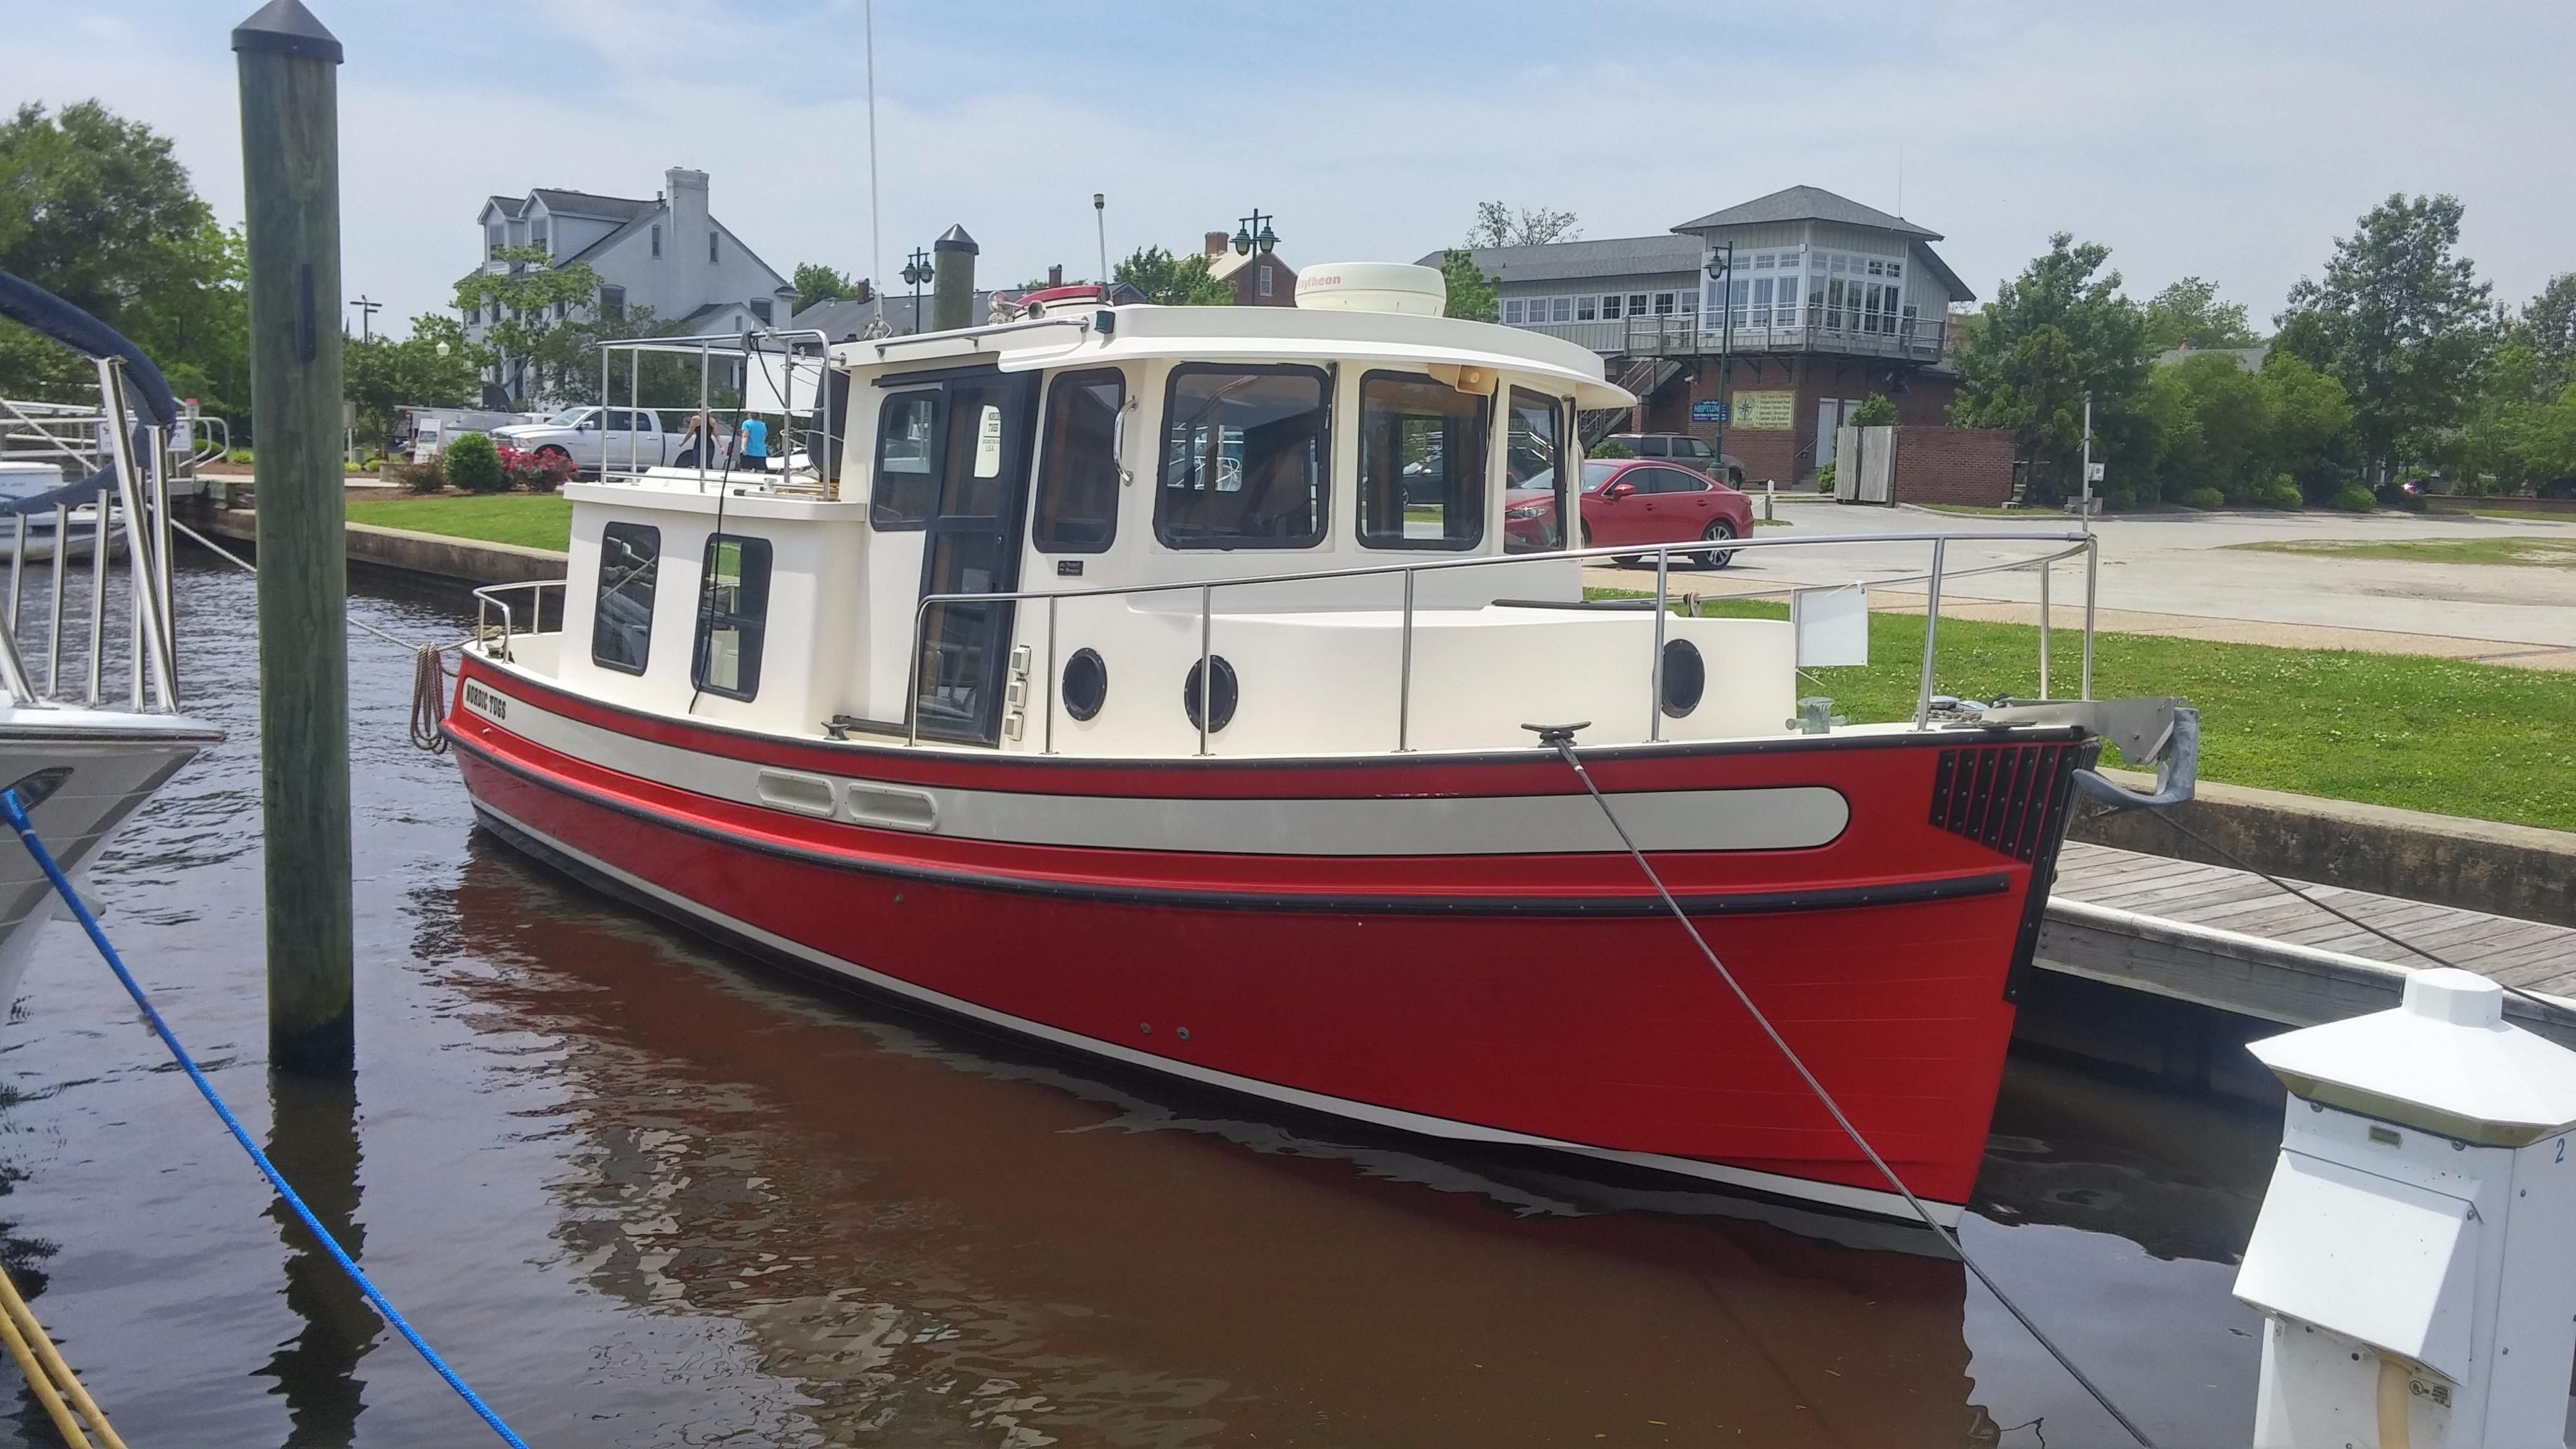 New Bern (NC) United States  city pictures gallery : 2000 Nordic Tugs 32 Power Boat For Sale www.yachtworld.com